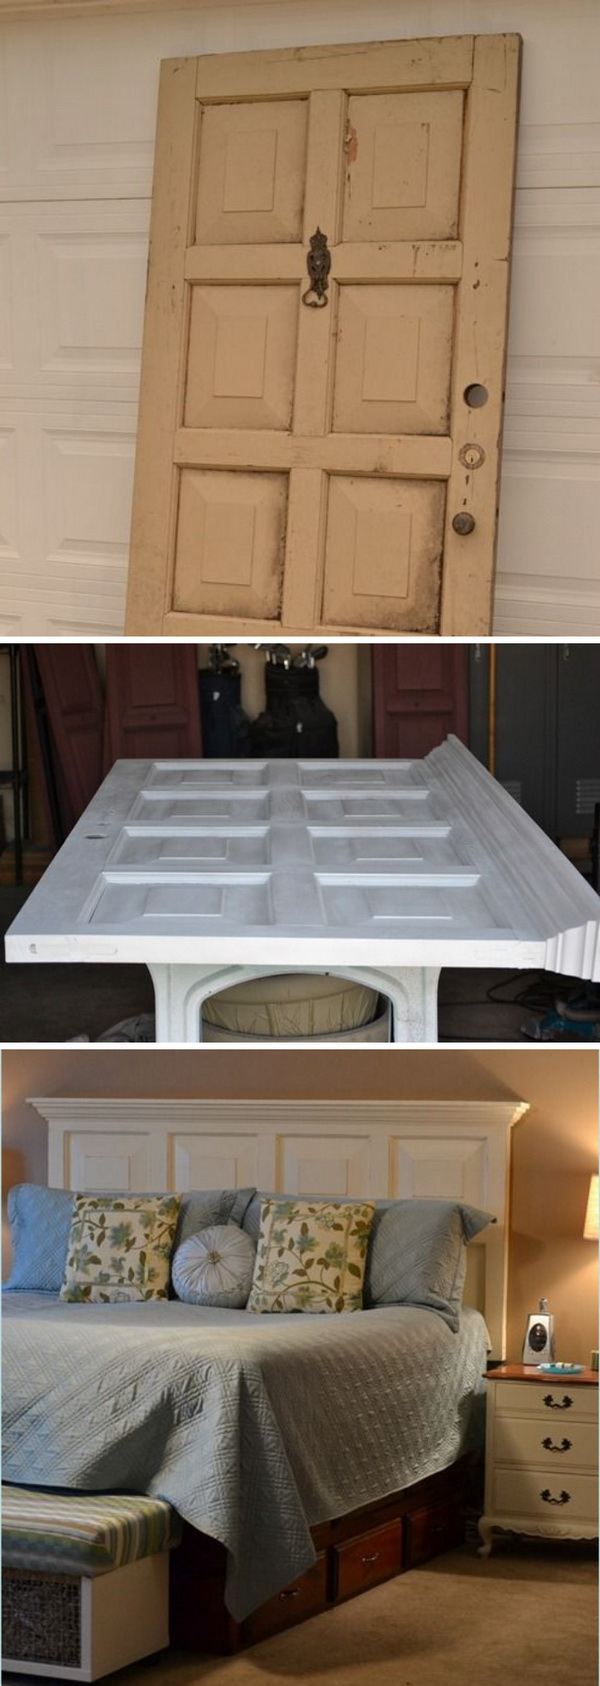 30 creative and easy diy furniture hacks for creative juice for Unique diy furniture